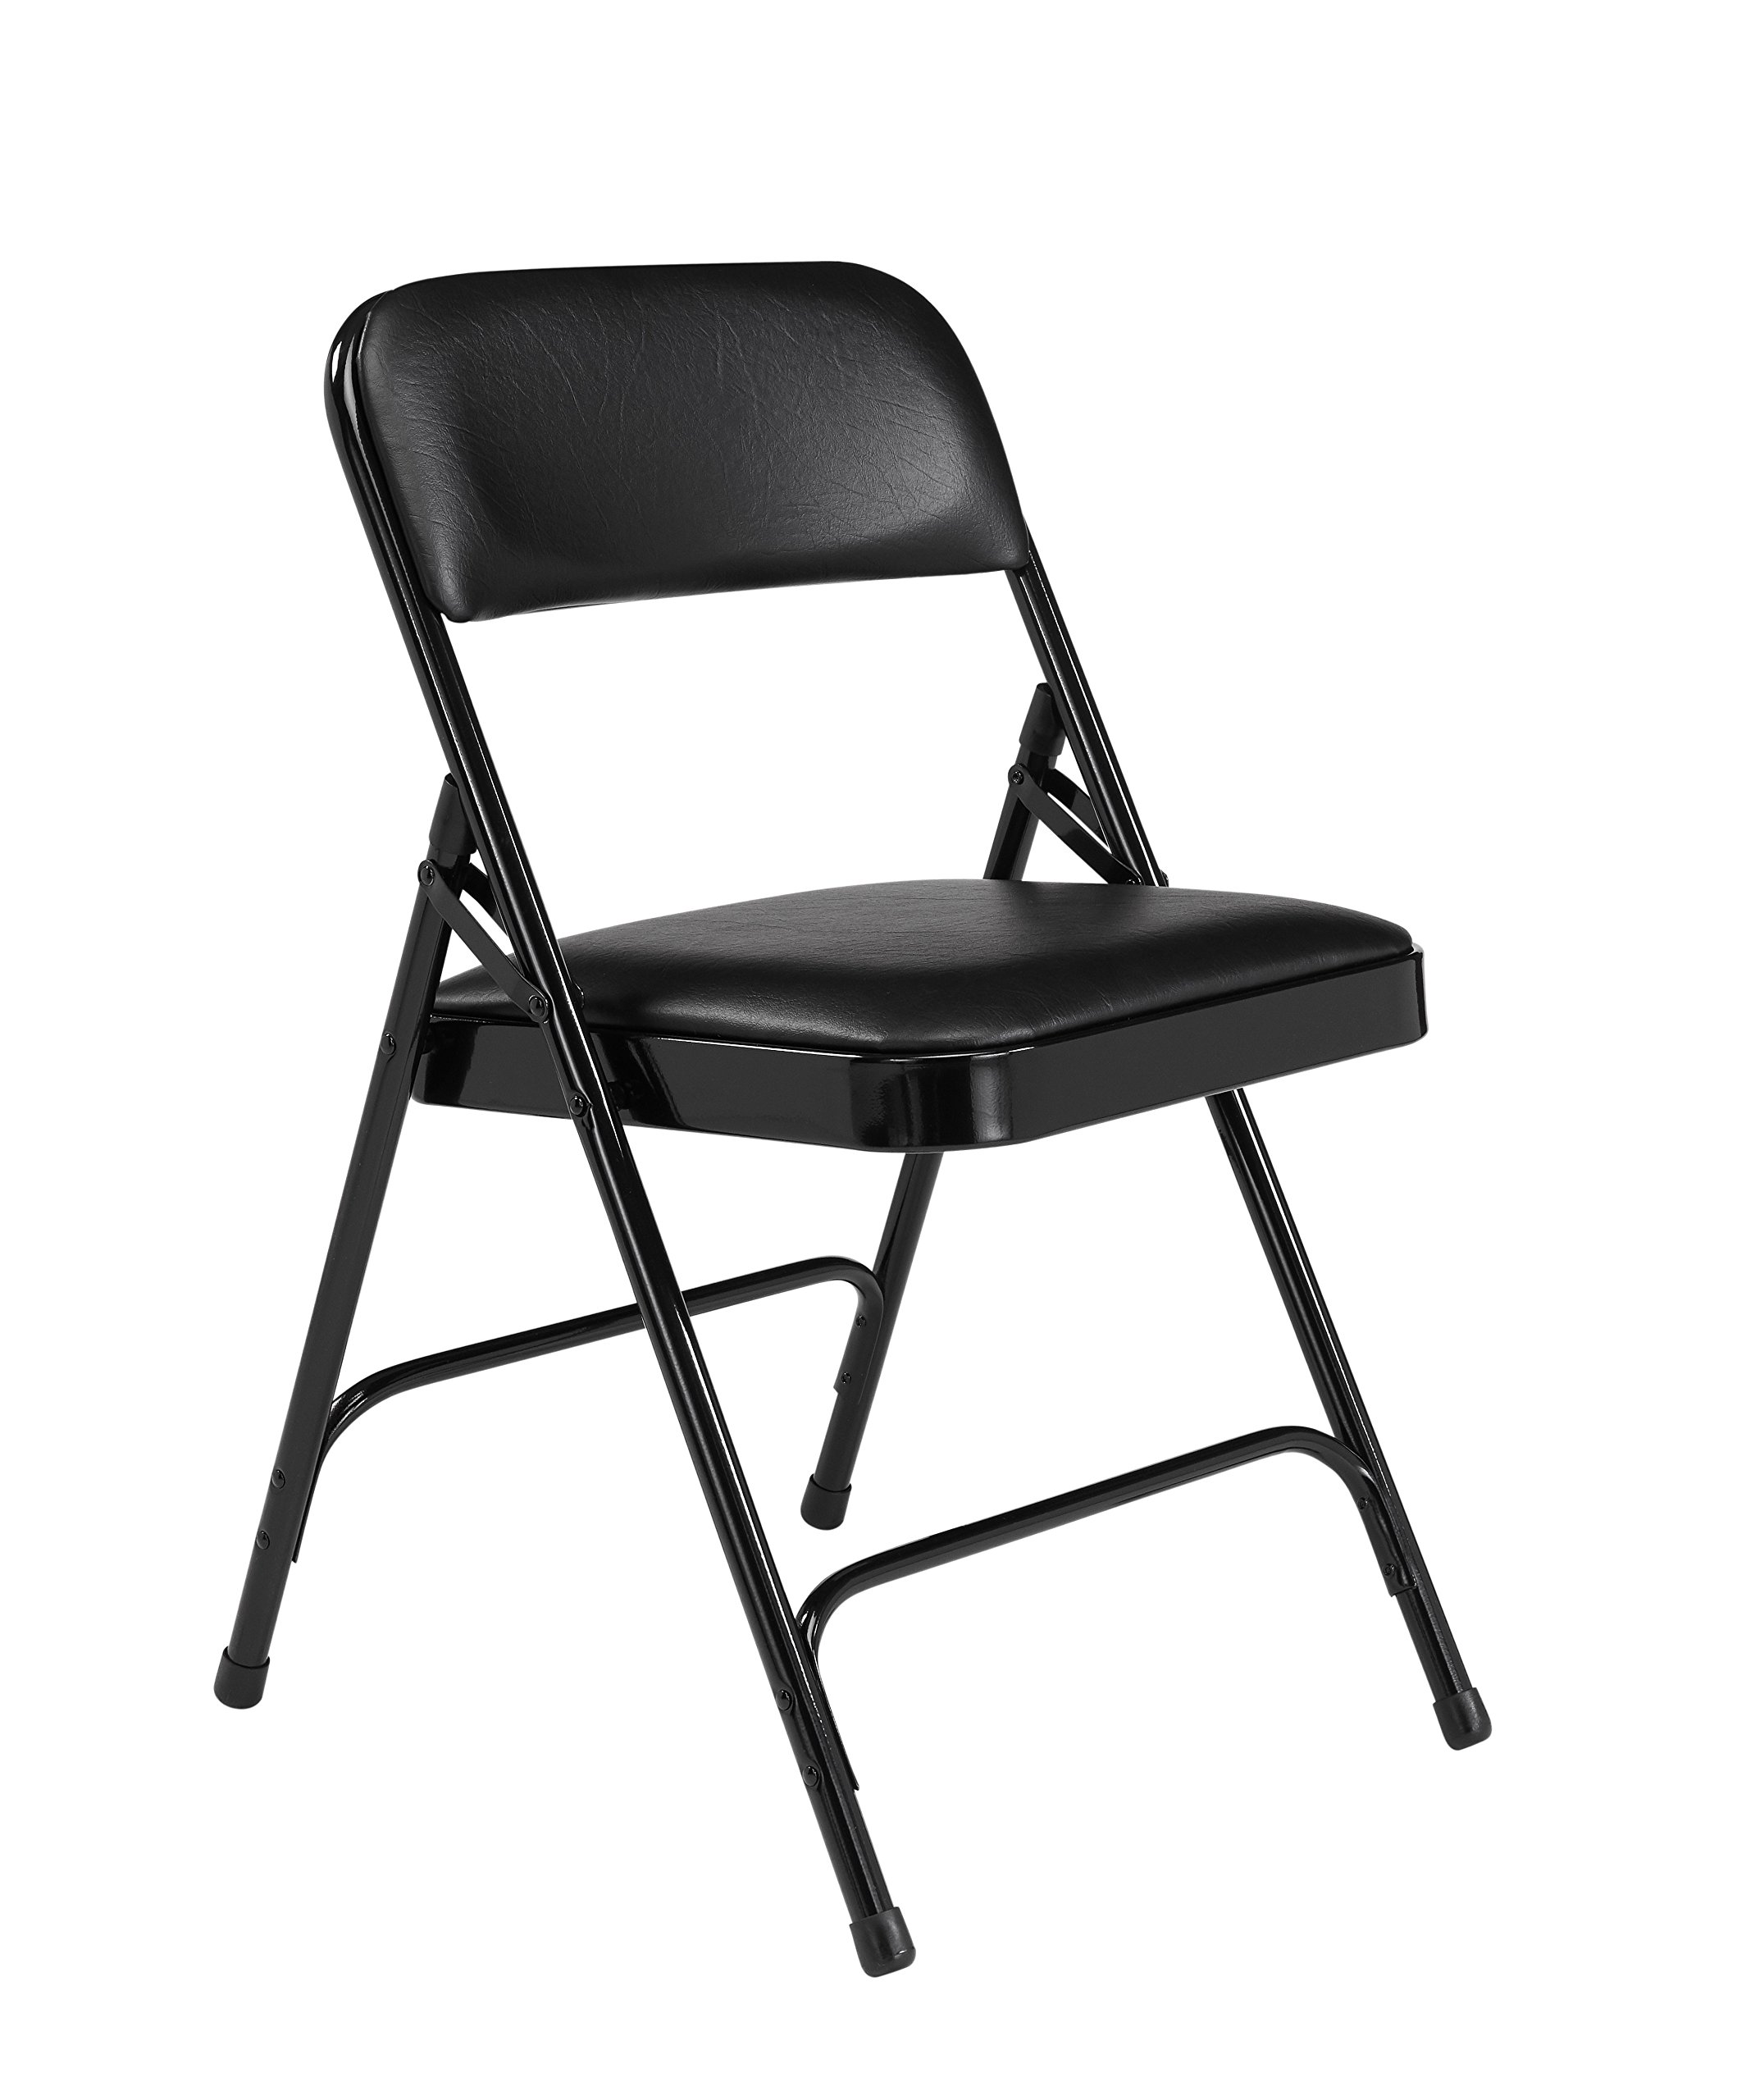 National Public Seating 1200 Series Steel Frame Upholstered Premium Vinyl Seat and Back Folding Chair with Double Brace, 480 lbs Capacity, Caviar Black/Black (Carton of 4)